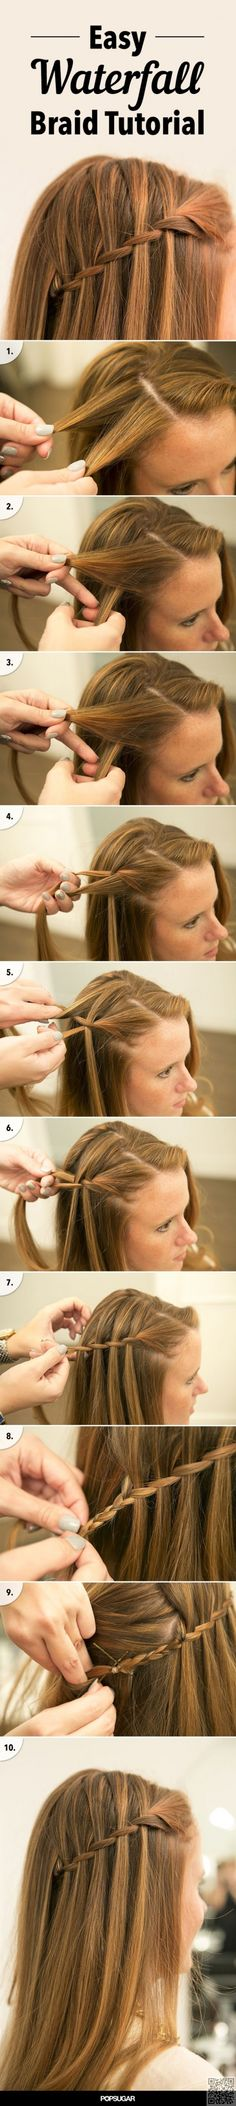 12. The #Waterfall Braid - Tame Your #Tresses with These #Gorgeous Hairstyles…